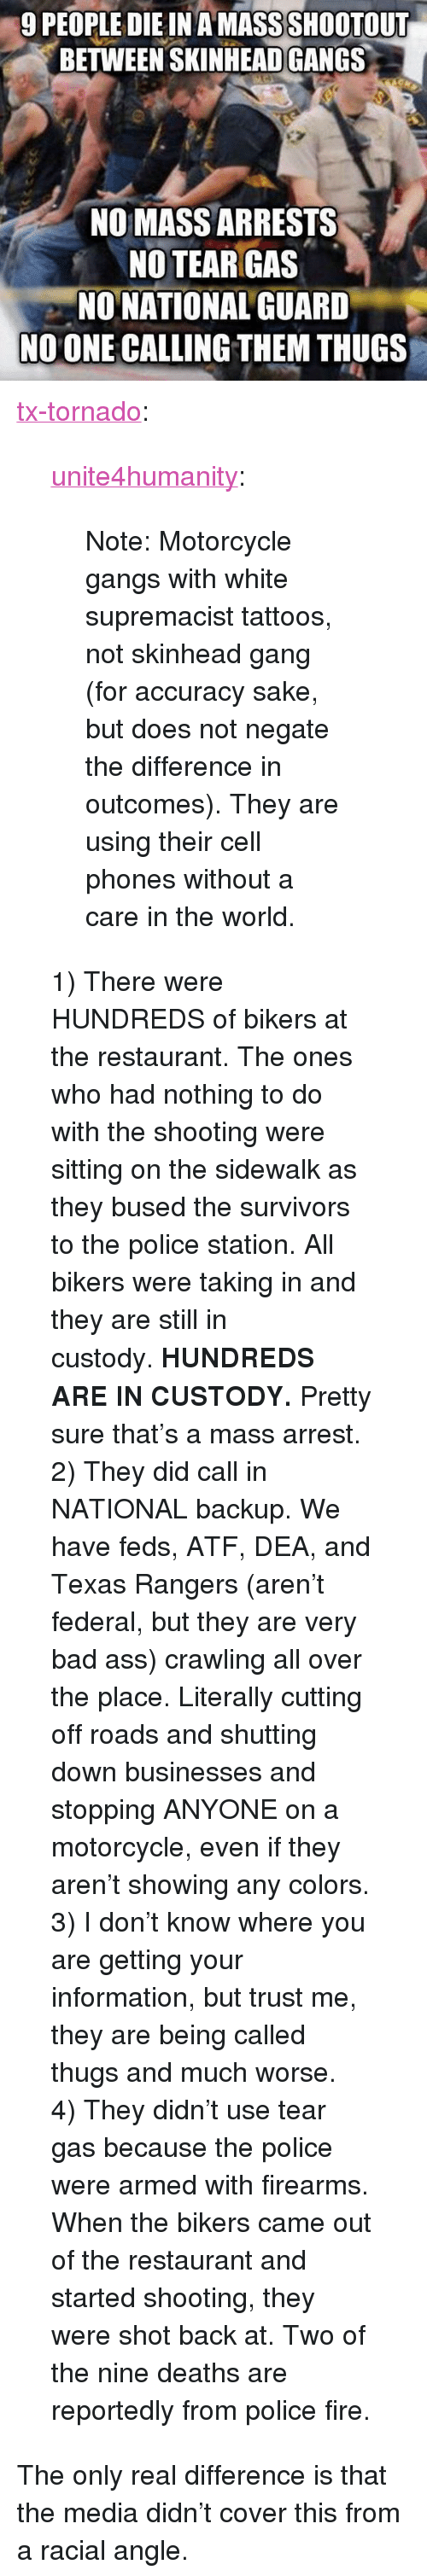 """Motorcycle: 9 PEOPLE DIE IN A MASS SHOOTOUT  BETWEEN SKINHEADGANGS  NO MASS ARRESTS  NO TEAR GAS  NO NATIONAL GUARD  NO ONE CALLING THEM THUGS <p><a href=""""http://tx-tornado.tumblr.com/post/119259224422/unite4humanity-note-motorcycle-gangs-with"""" class=""""tumblr_blog"""">tx-tornado</a>:</p>  <blockquote><p><a href=""""http://unite4humanity.tumblr.com/post/119251501957/note-motorcycle-gangs-with-white-supremacist"""" class=""""tumblr_blog"""">unite4humanity</a>:</p>  <blockquote><p>Note: Motorcycle gangs with white supremacist tattoos, not skinhead gang (for accuracy sake, but does not negate the difference in outcomes). They are using their cell phones without a care in the world.</p></blockquote>  <p>1) There were HUNDREDS of bikers at the restaurant. The ones who had nothing to do with the shooting were sitting on the sidewalk as they bused the survivors to the police station. All bikers were taking in and they are still in custody.<b>HUNDREDS ARE IN CUSTODY. </b>Pretty sure that's a mass arrest.</p><p>2) They did call in NATIONAL backup. We have feds, ATF, DEA, and Texas Rangers (aren't federal, but they are very bad ass) crawling all over the place. Literally cutting off roads and shutting down businesses and stopping ANYONE on a motorcycle, even if they aren't showing any colors.</p><p>3) I don't know where you are getting your information, but trust me, they are being called thugs and much worse.</p><p>4) They didn't use tear gas because the police were armed with firearms. When the bikers came out of the restaurant and started shooting, they were shot back at. Two of the nine deaths are reportedly from police fire.</p></blockquote>  <p>The only real difference is that the media didn&rsquo;t cover this from a racial angle.</p>"""